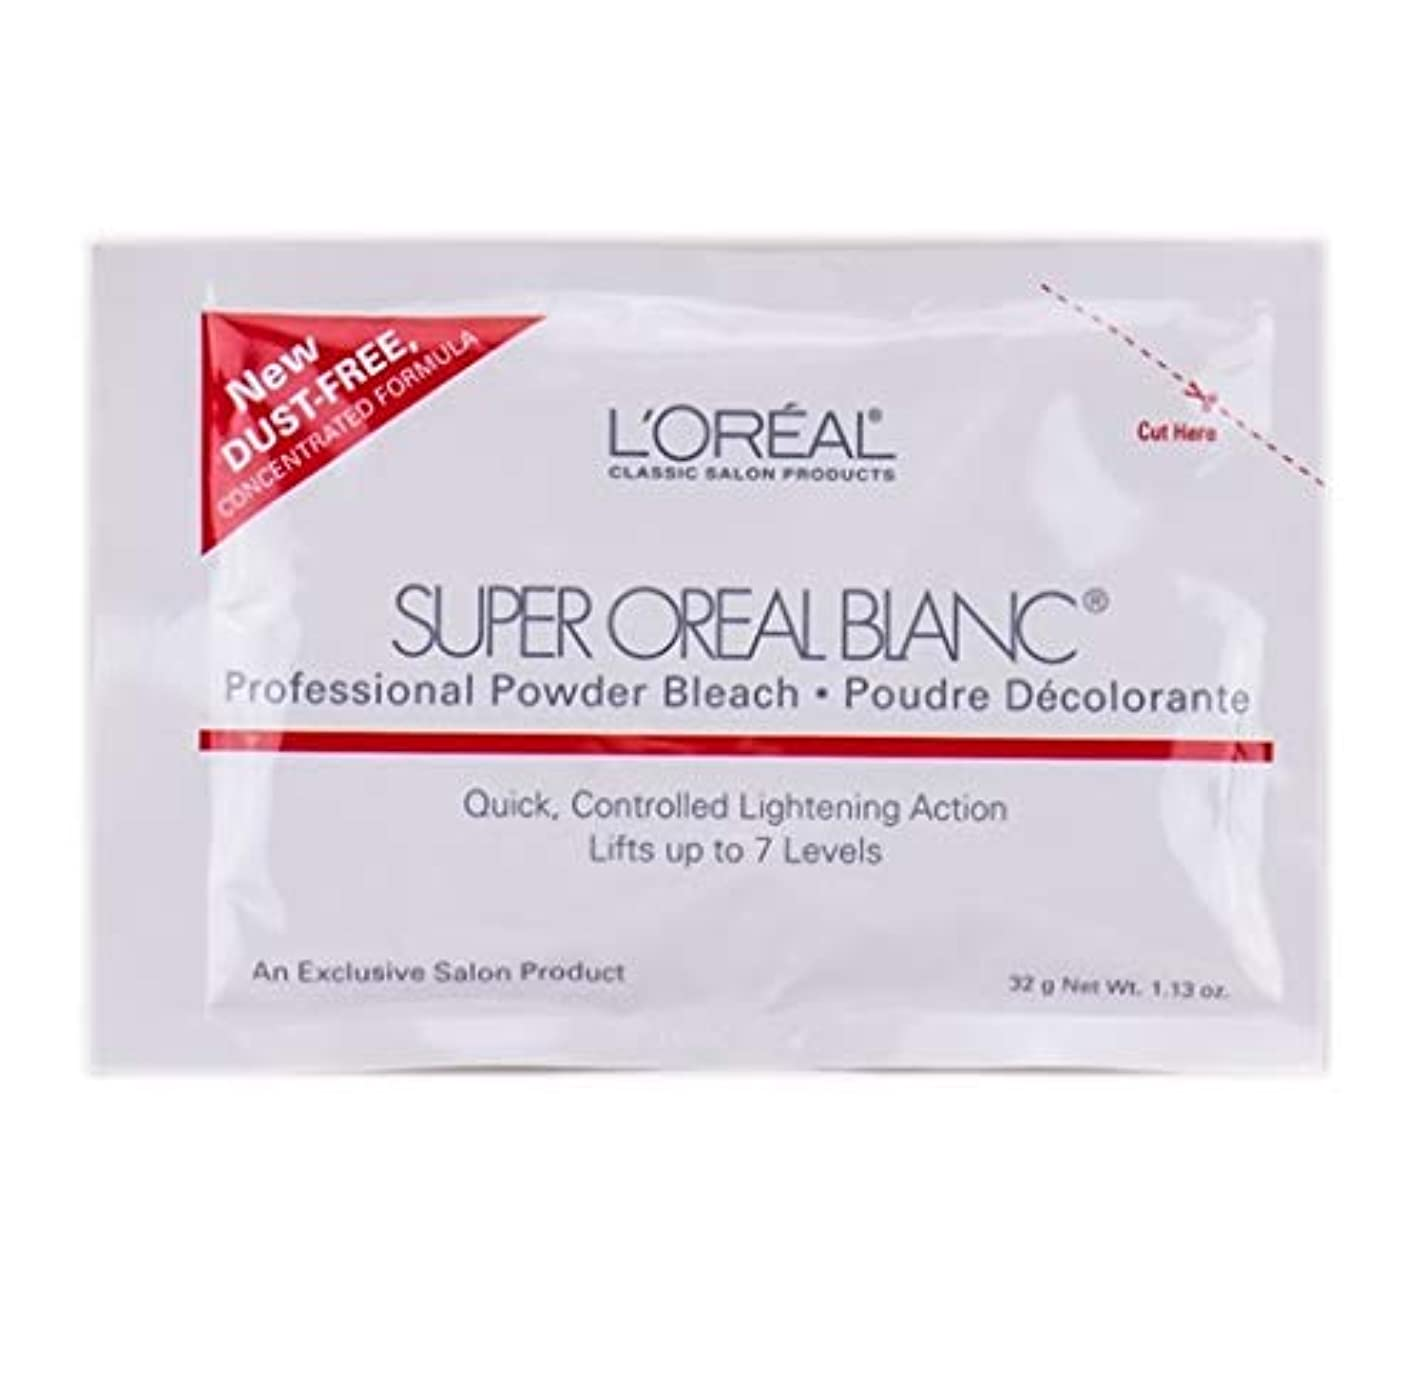 サイトラインテンポアトミックL'Oreal Super Oreal Blanc - Powder Bleach Packette - 1.13oz / 32g